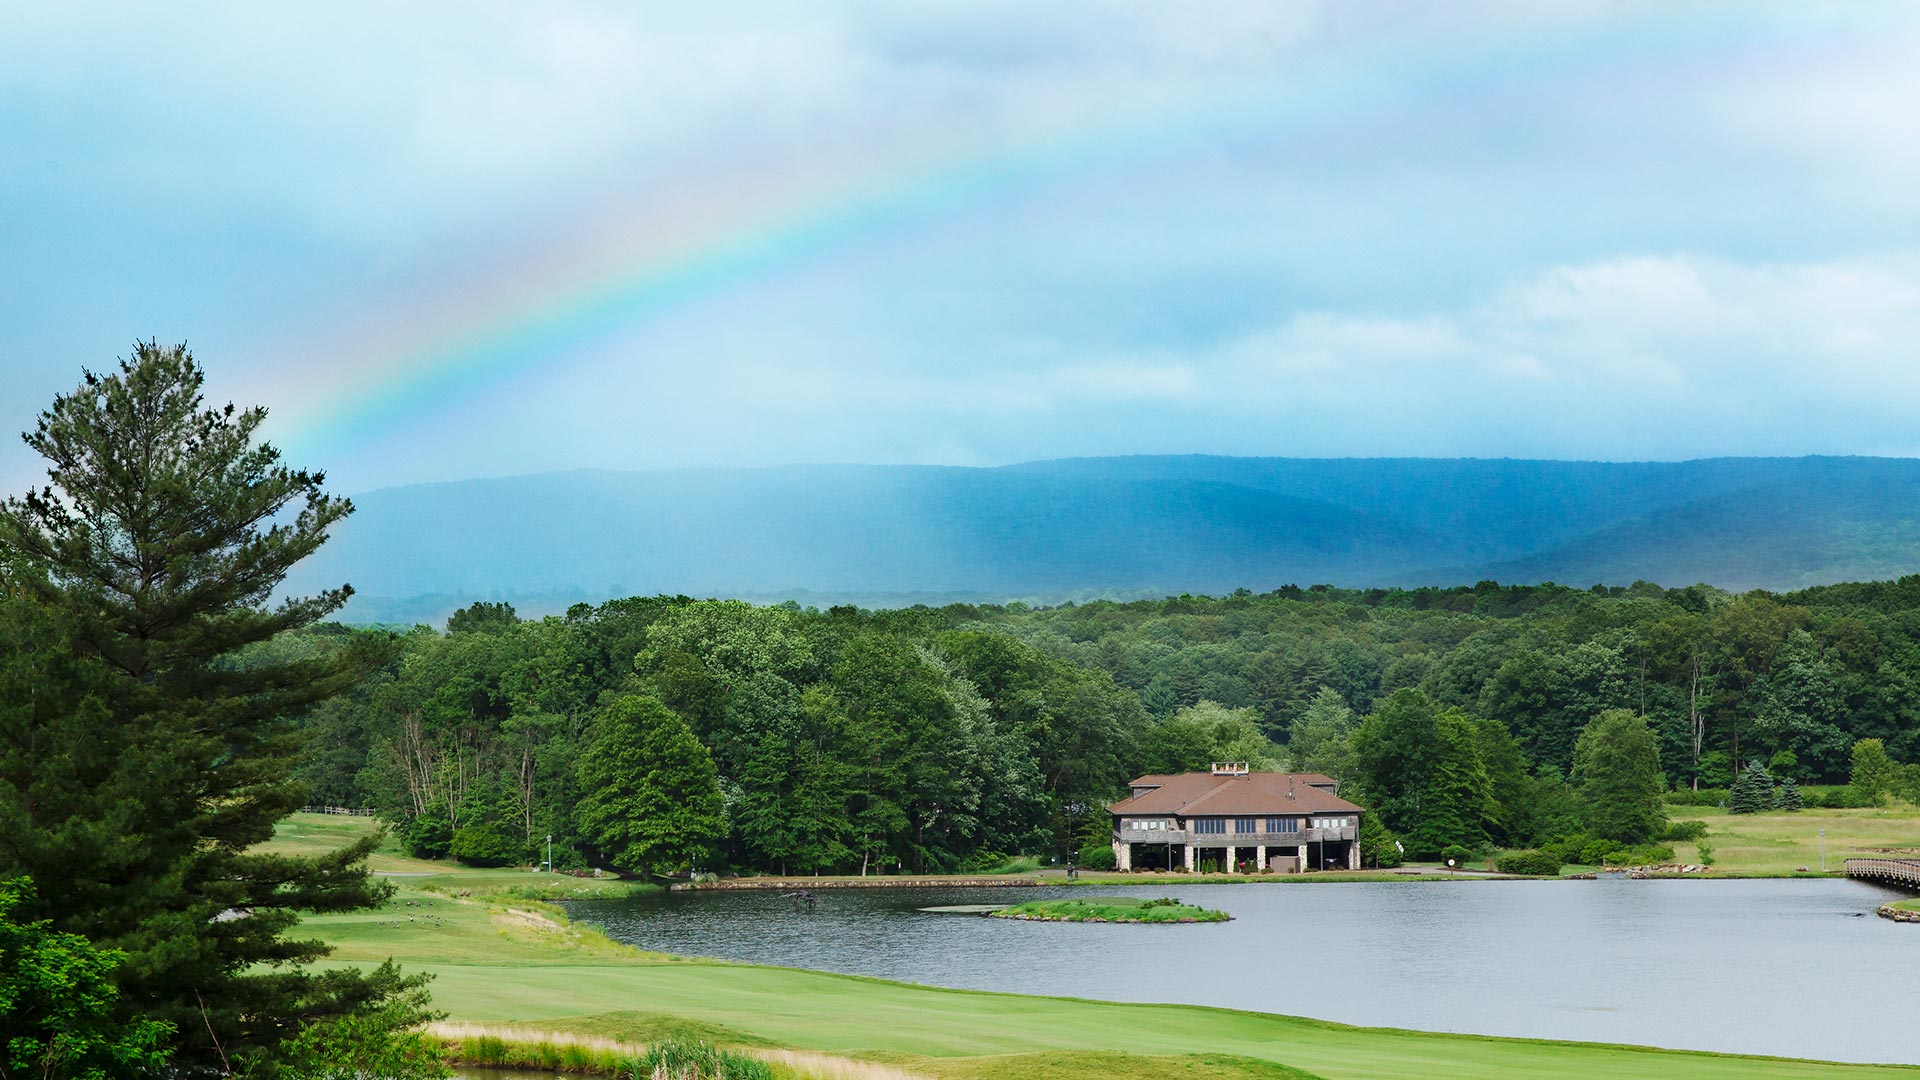 a house is perched on the lake's edge and is surrounded by forests and the golf course. There is a rainbow across the sky